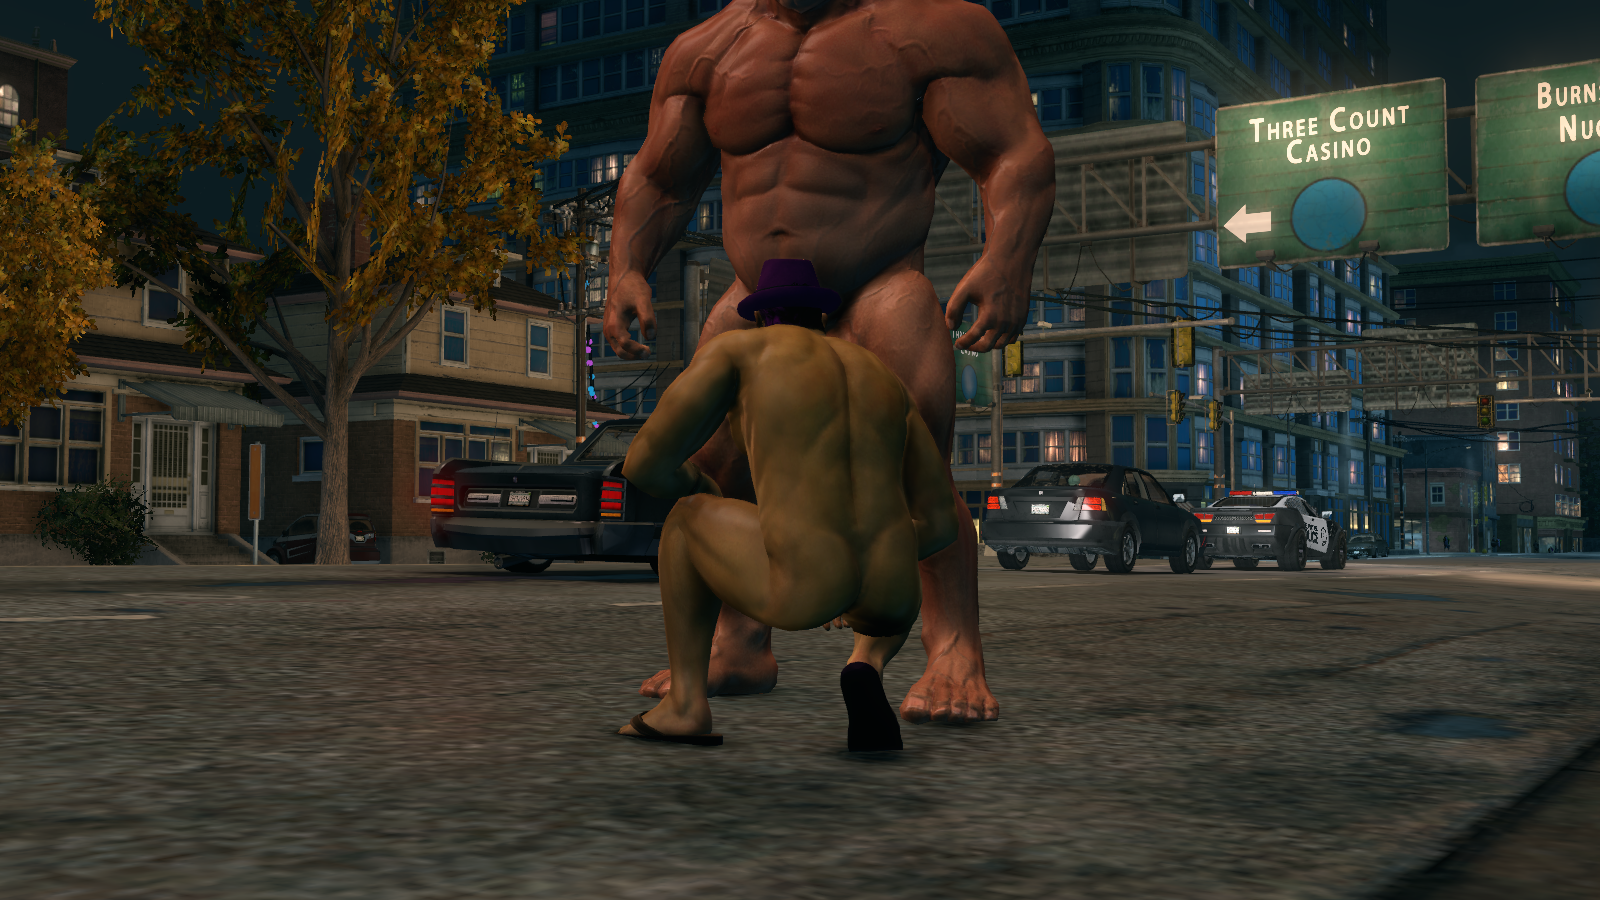 Saints row 2 naked mods hentay images